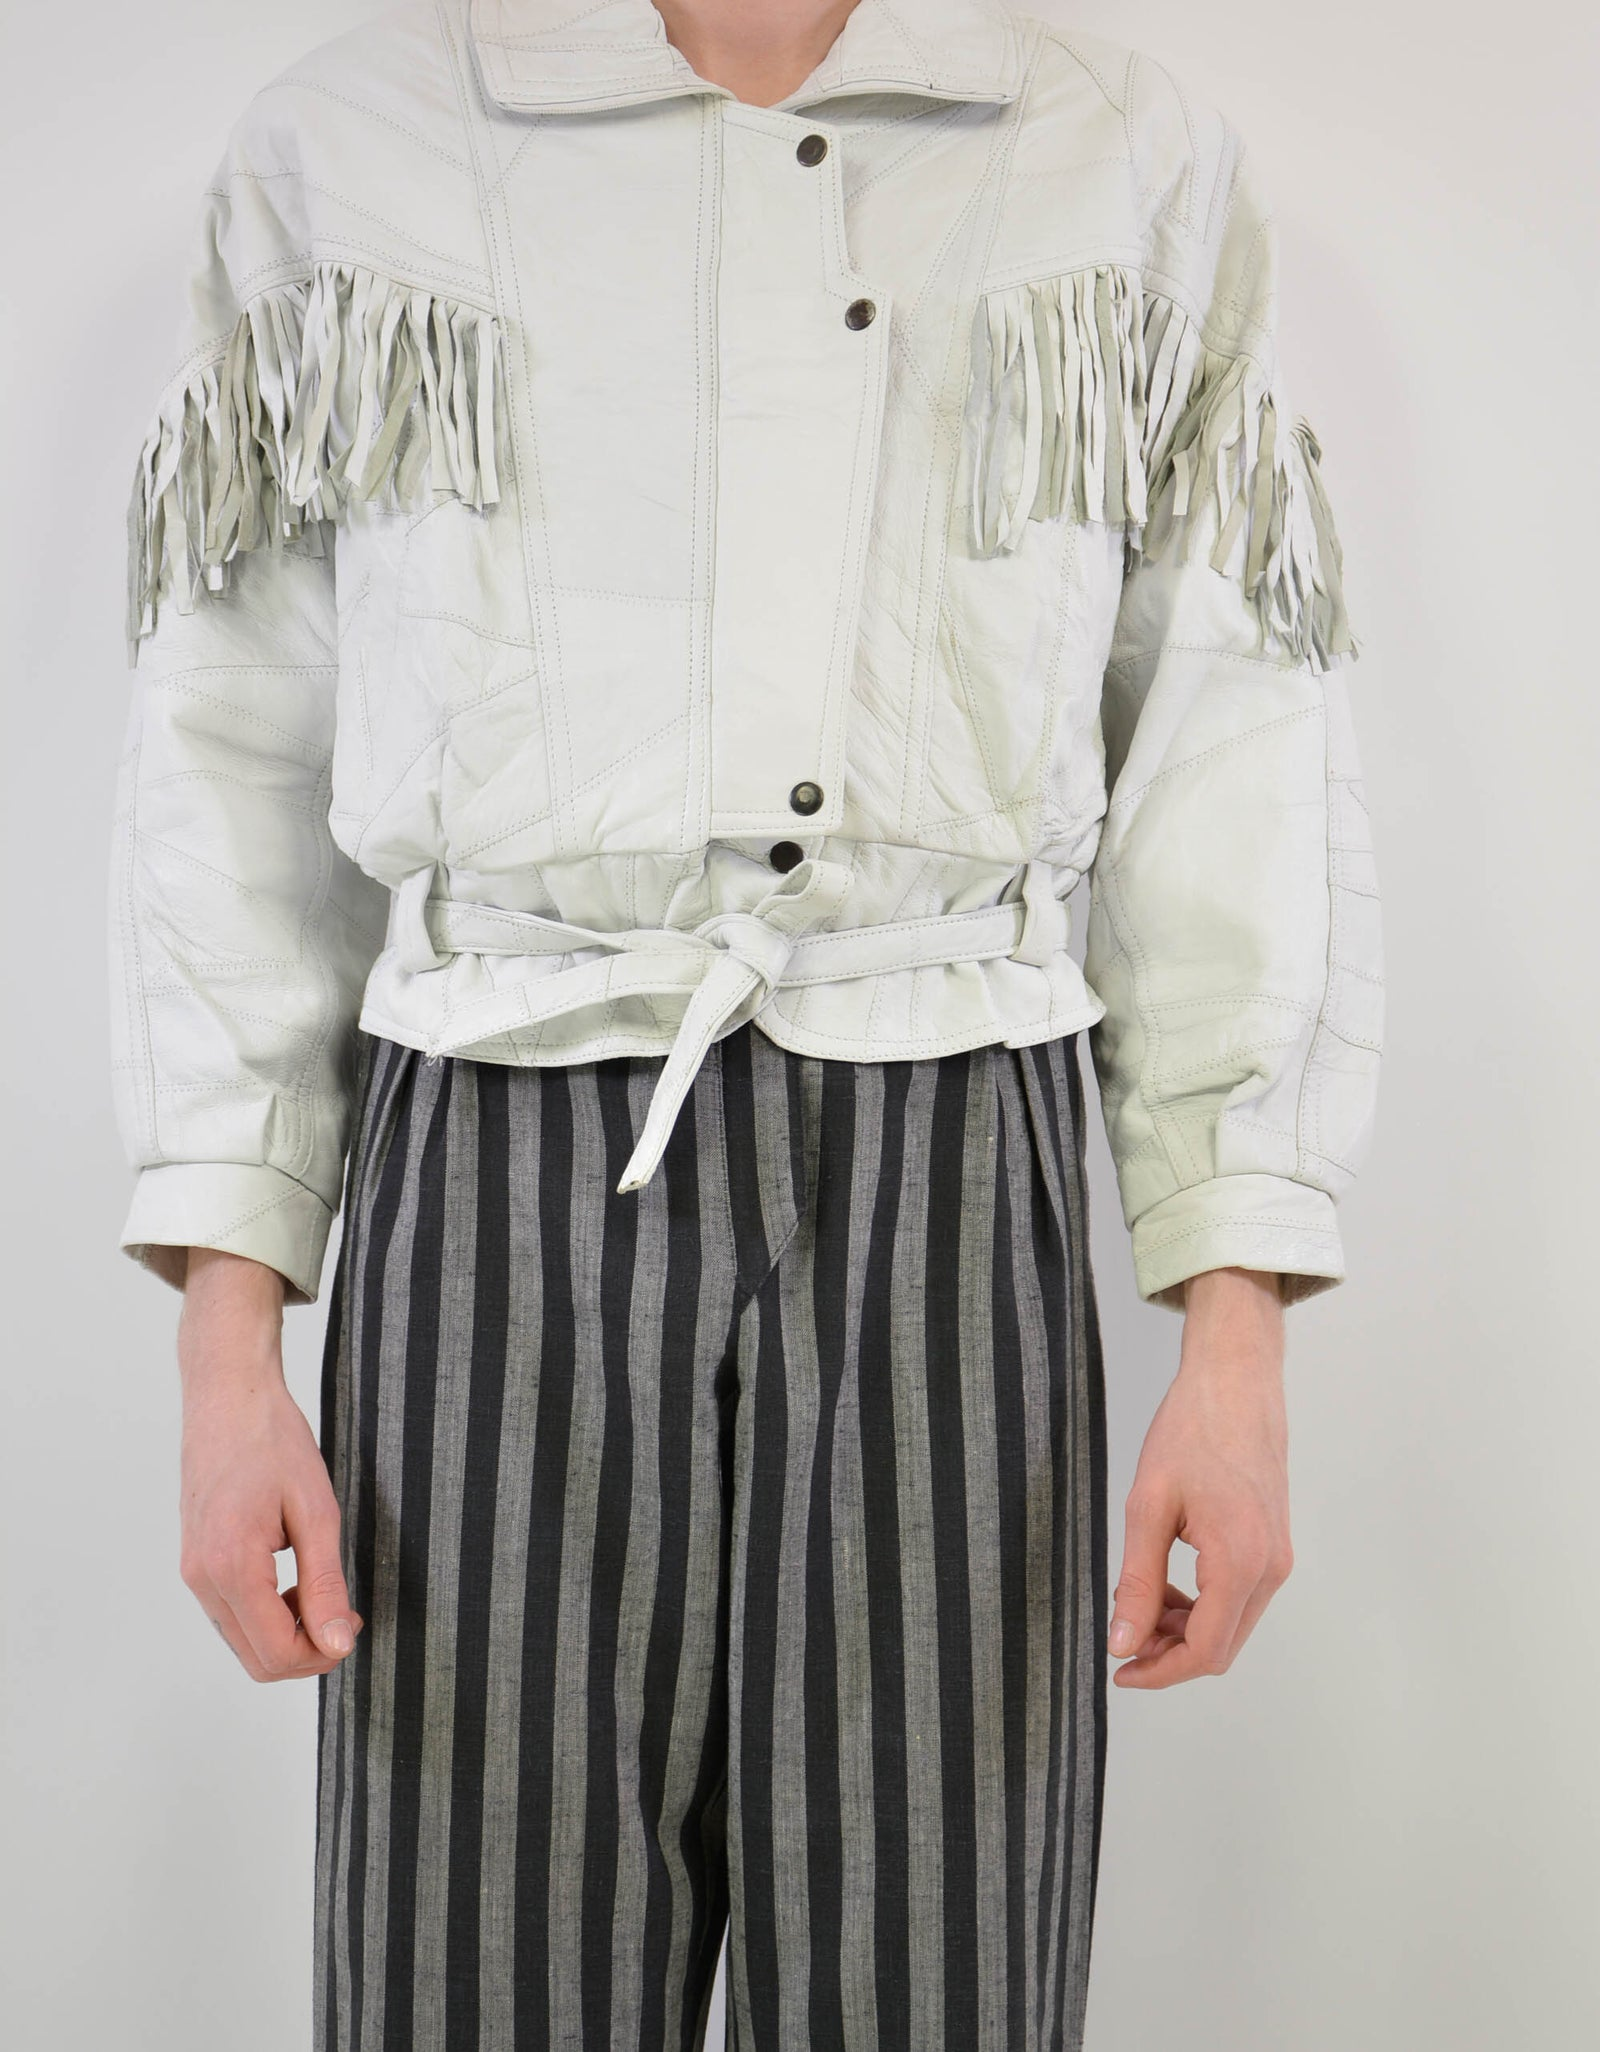 Leather fringe jacket - PICKNWEIGHT - VINTAGE KILO STORE